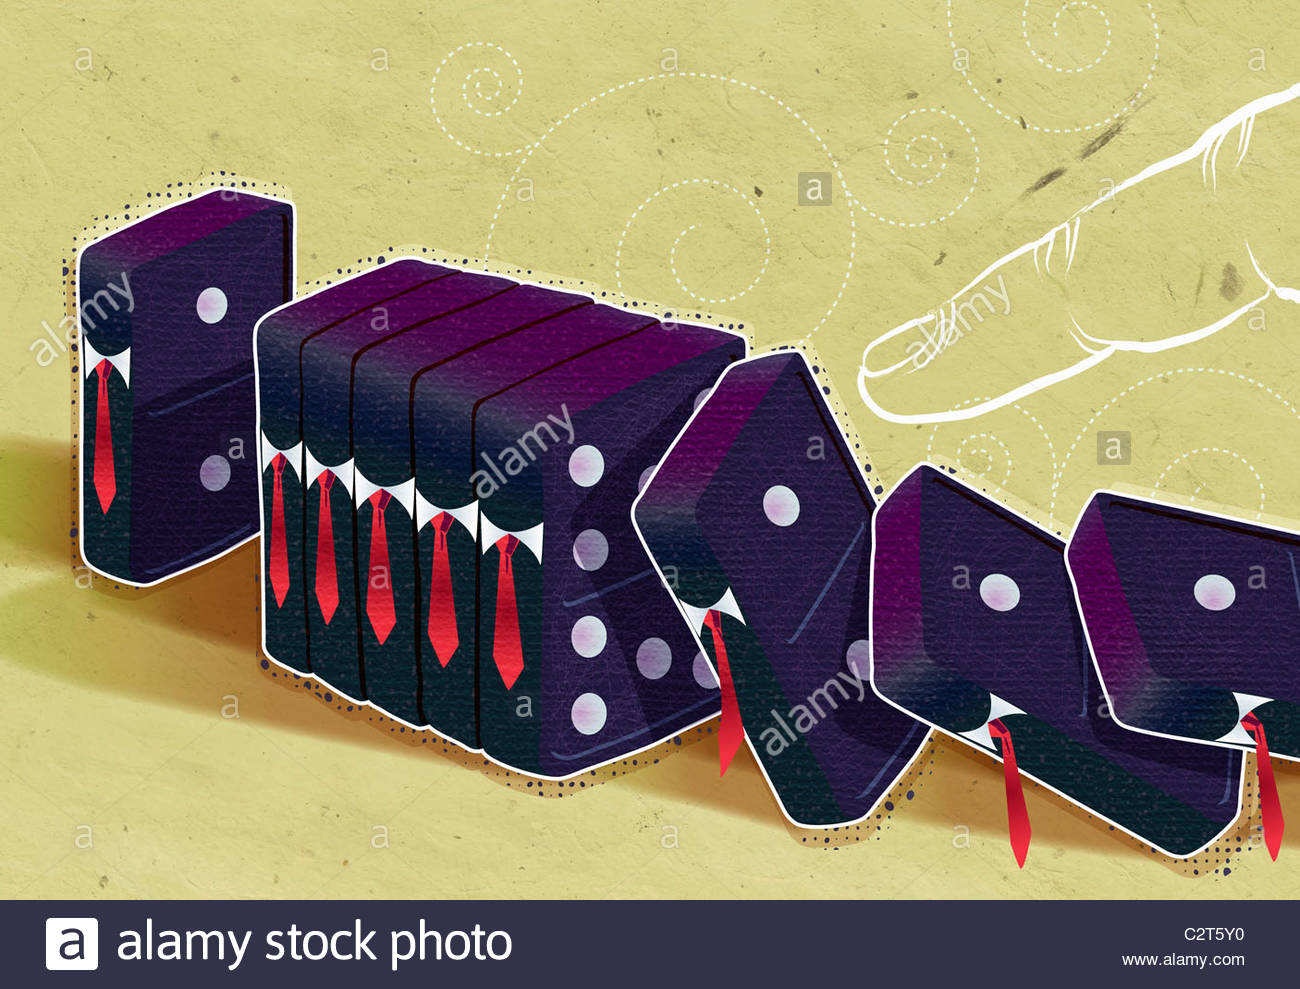 Finger pushing over businessman-shaped dominoes - Stock Image